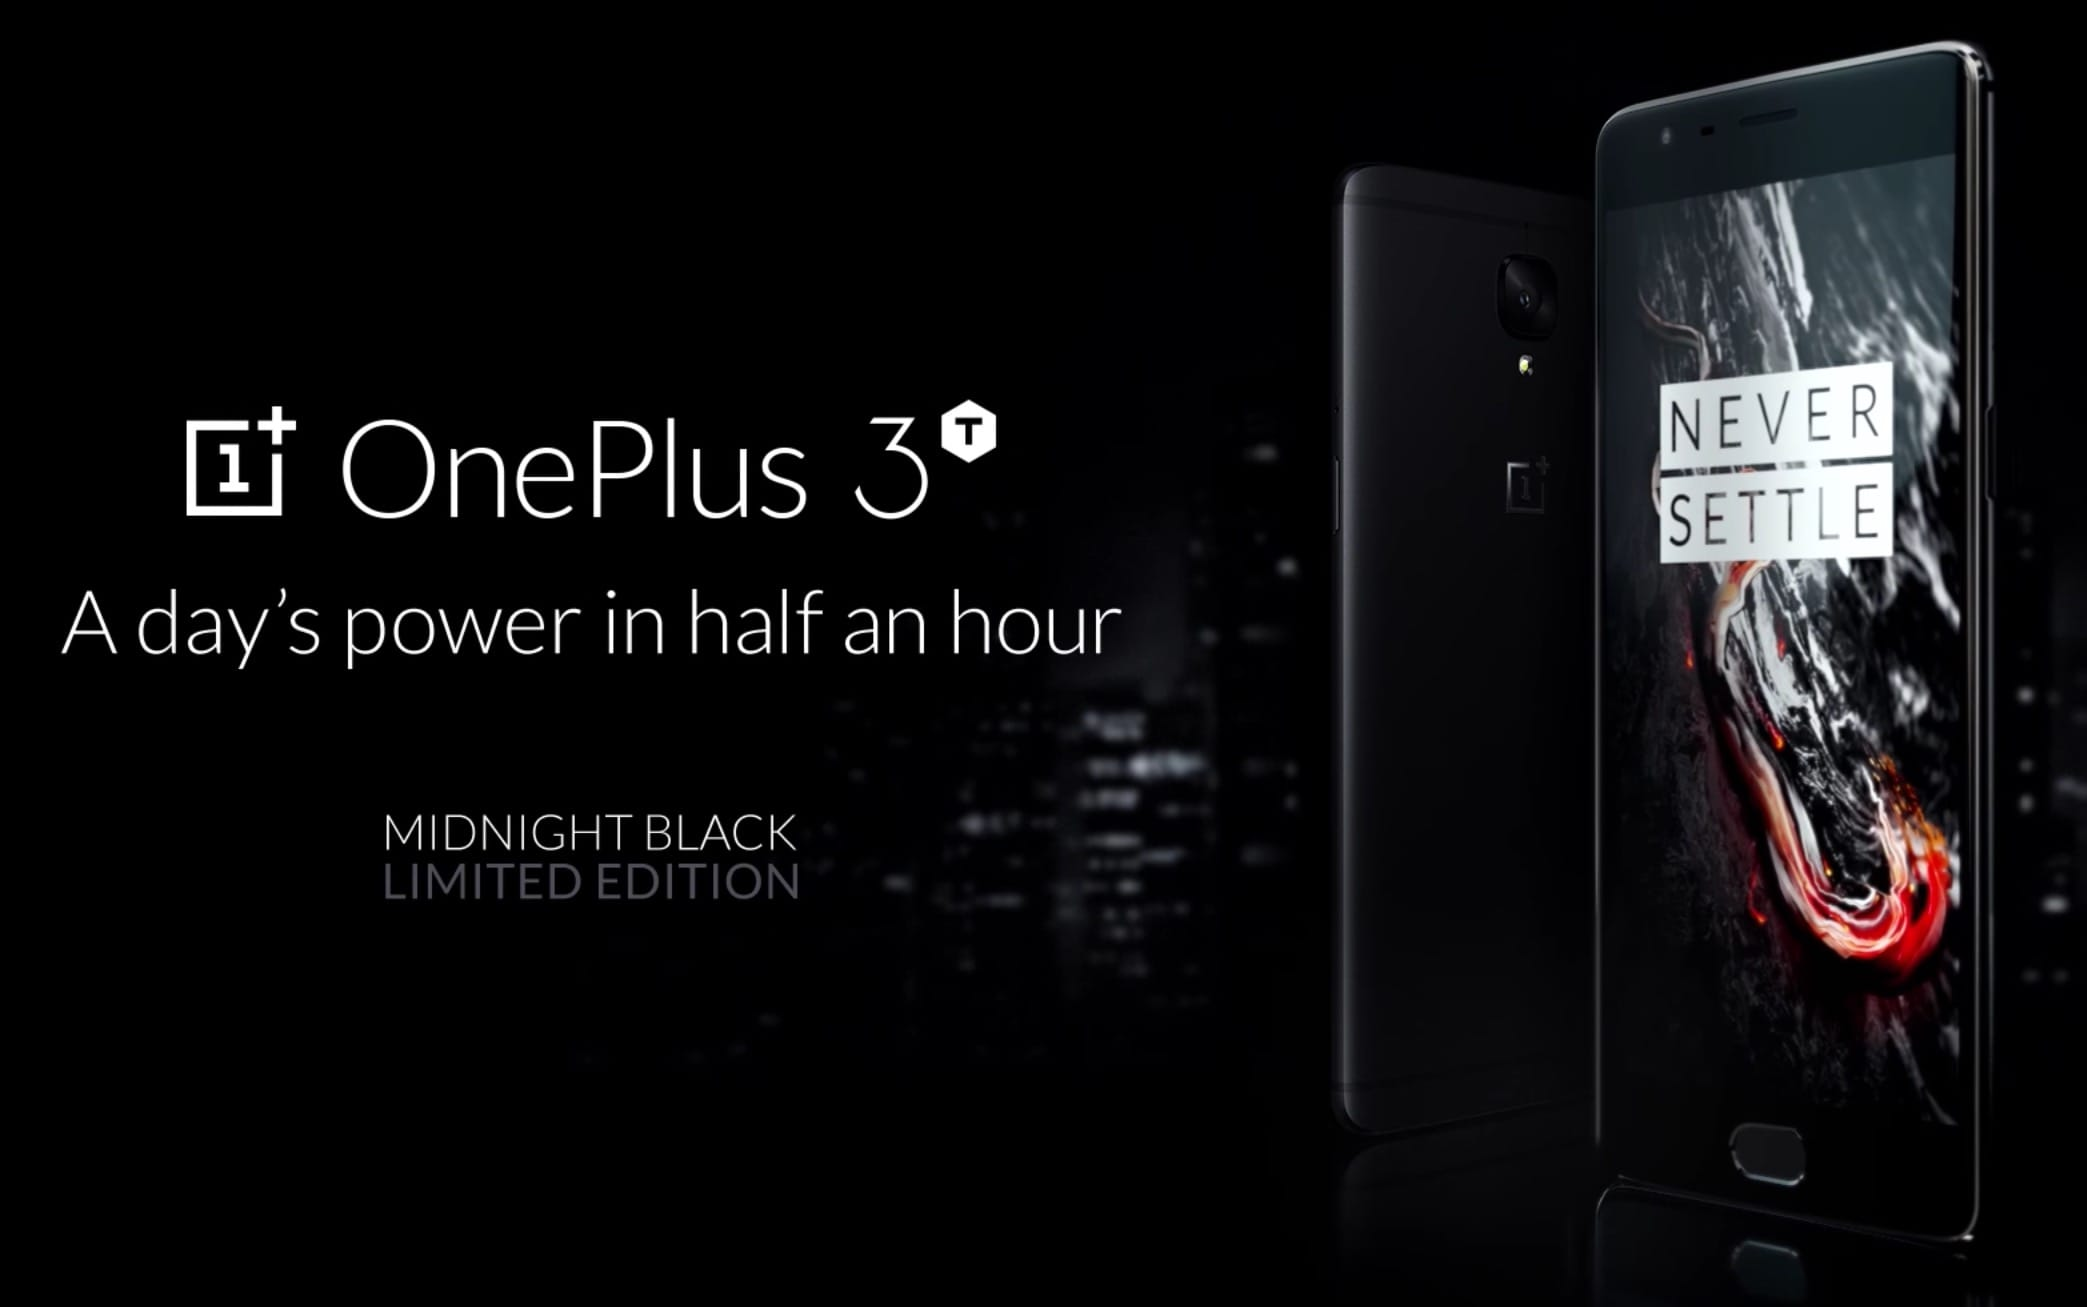 OnePLus 3T Midnight Black Buy 1